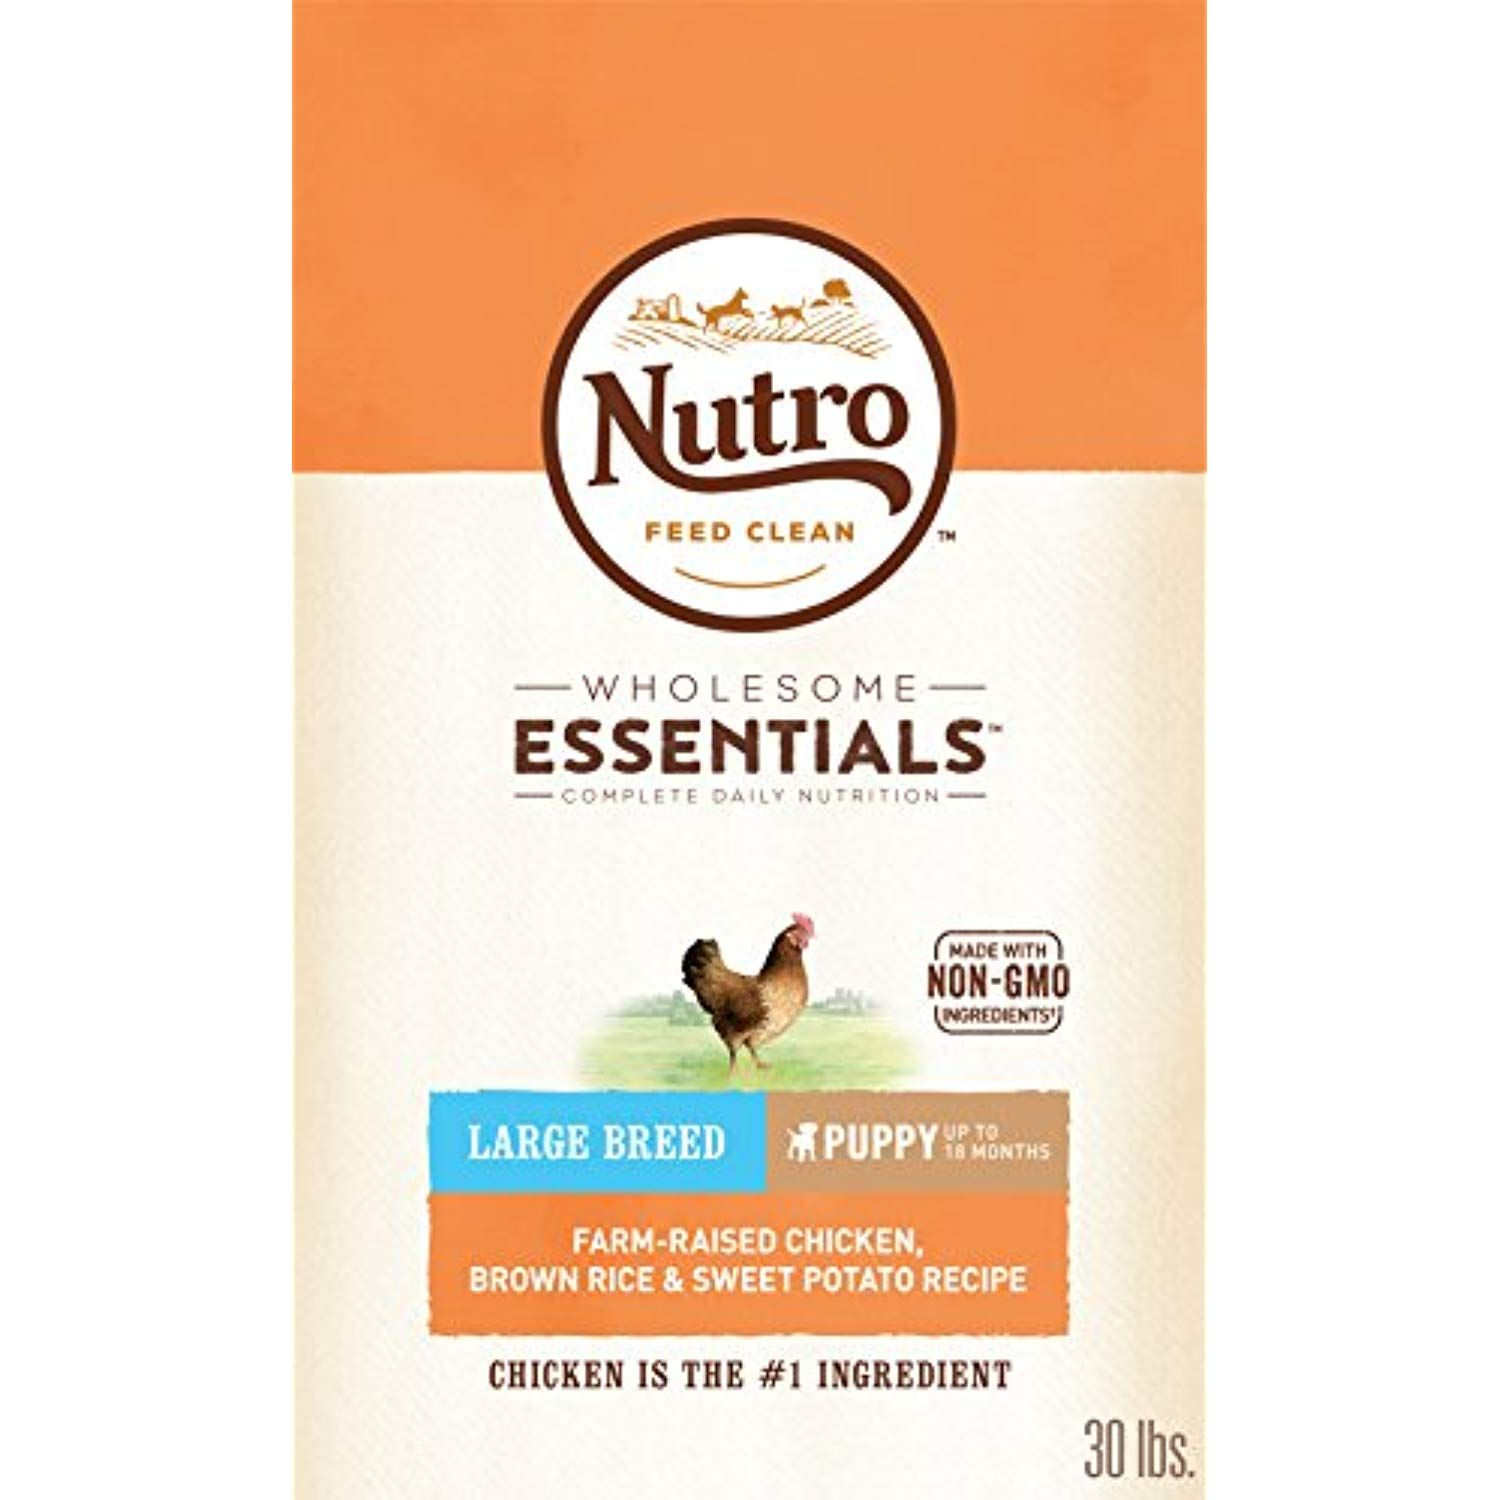 Nutro Wholesome Essentials Puppy Large Breed Dry Dog Food Farm